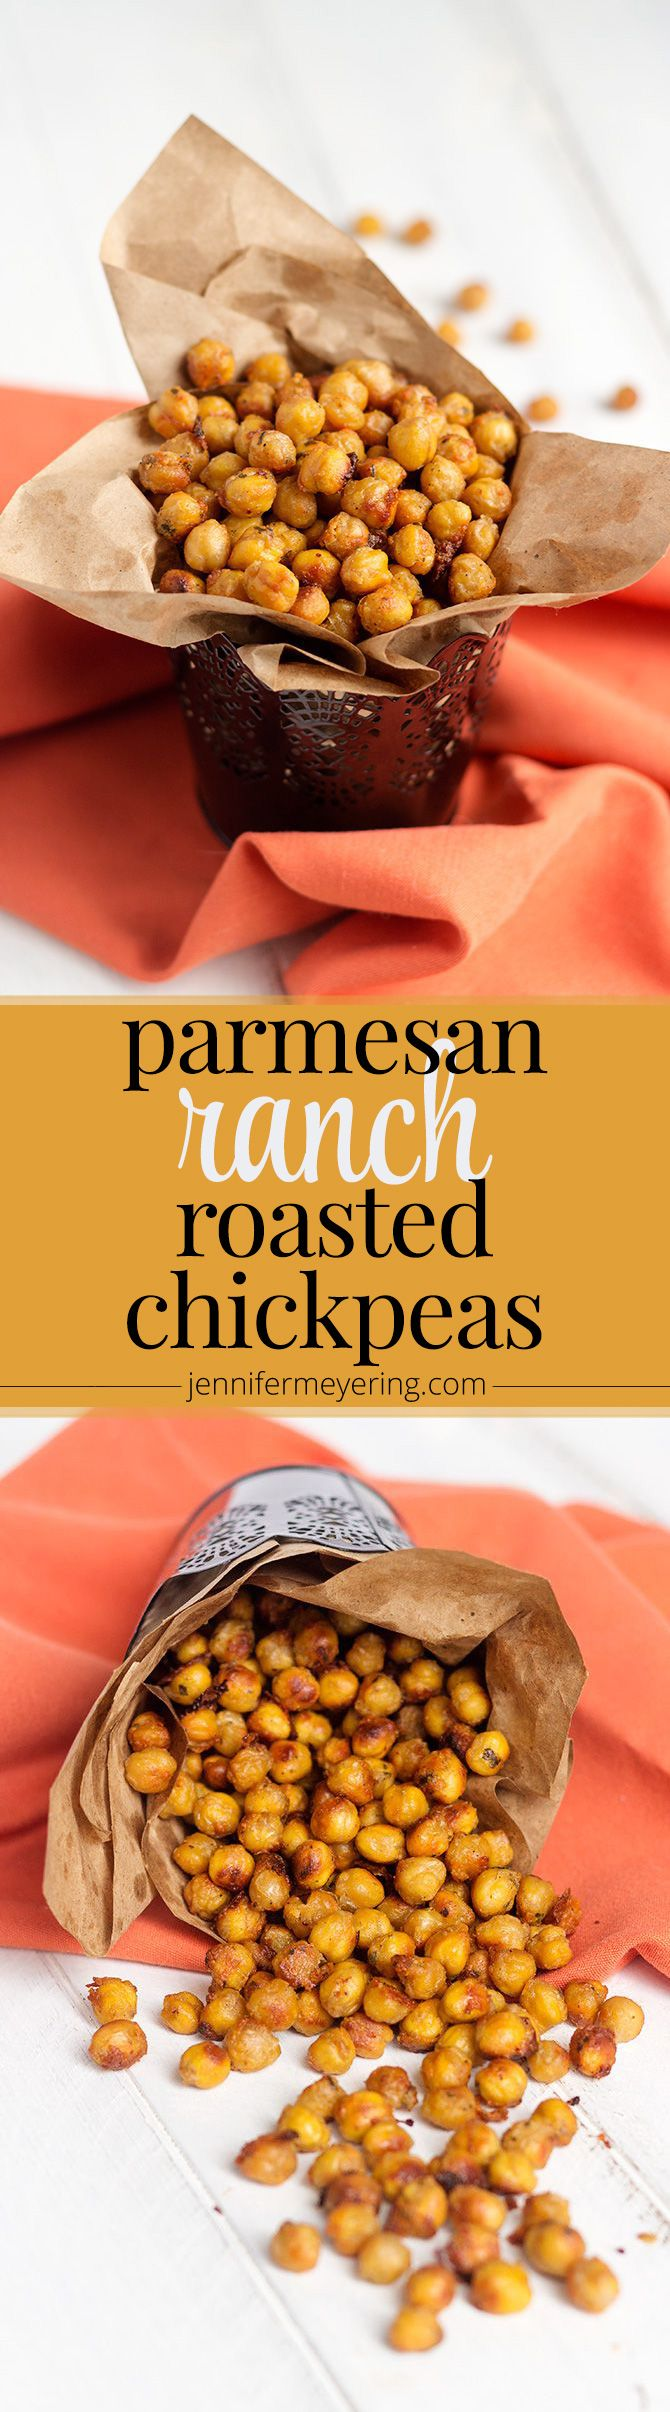 Parmesan Ranch Roasted Chickpeas - JenniferMeyering.com